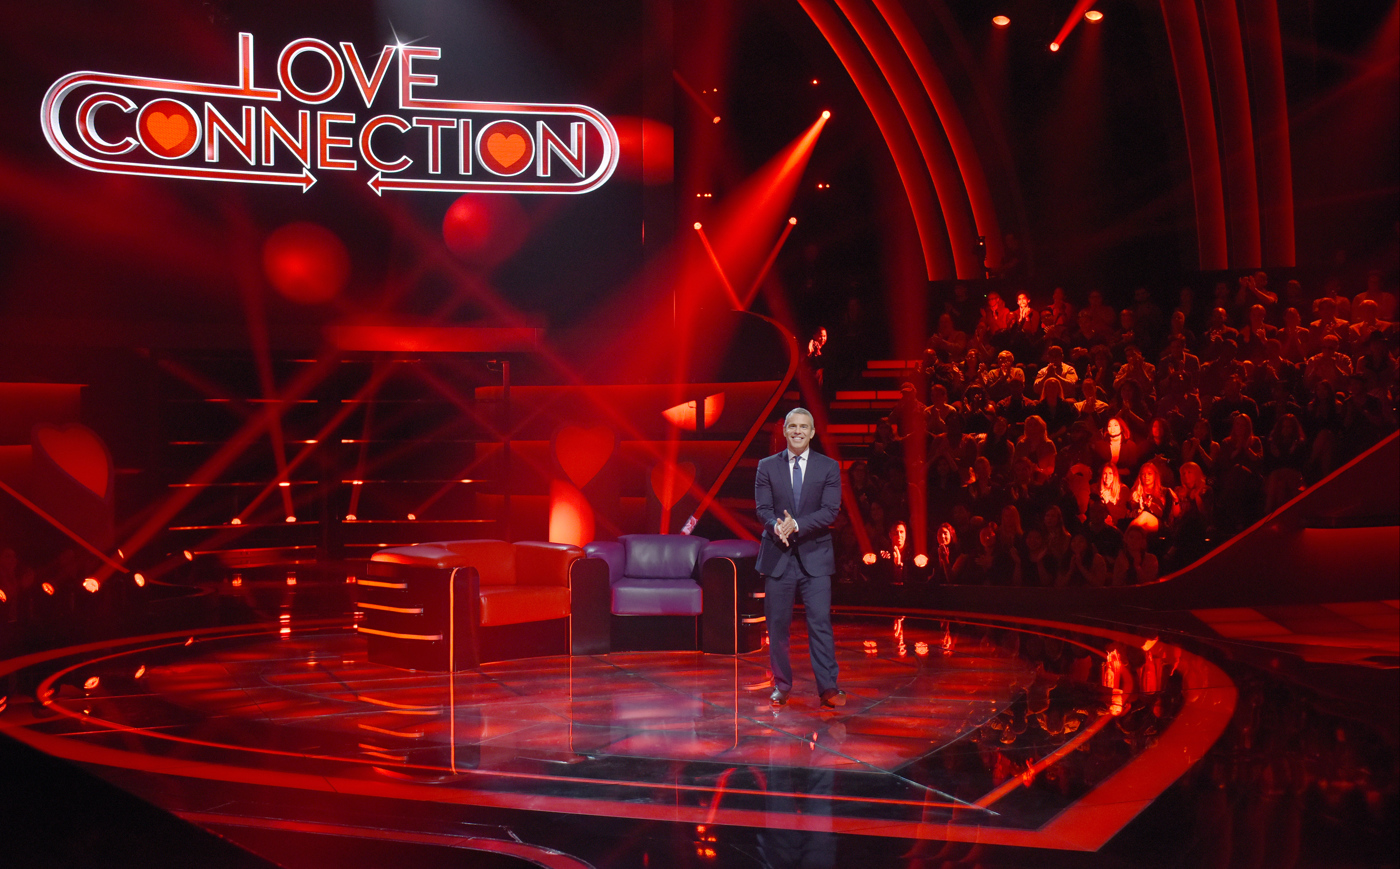 ncs_Fox-Love-Collection-Production-Design_011